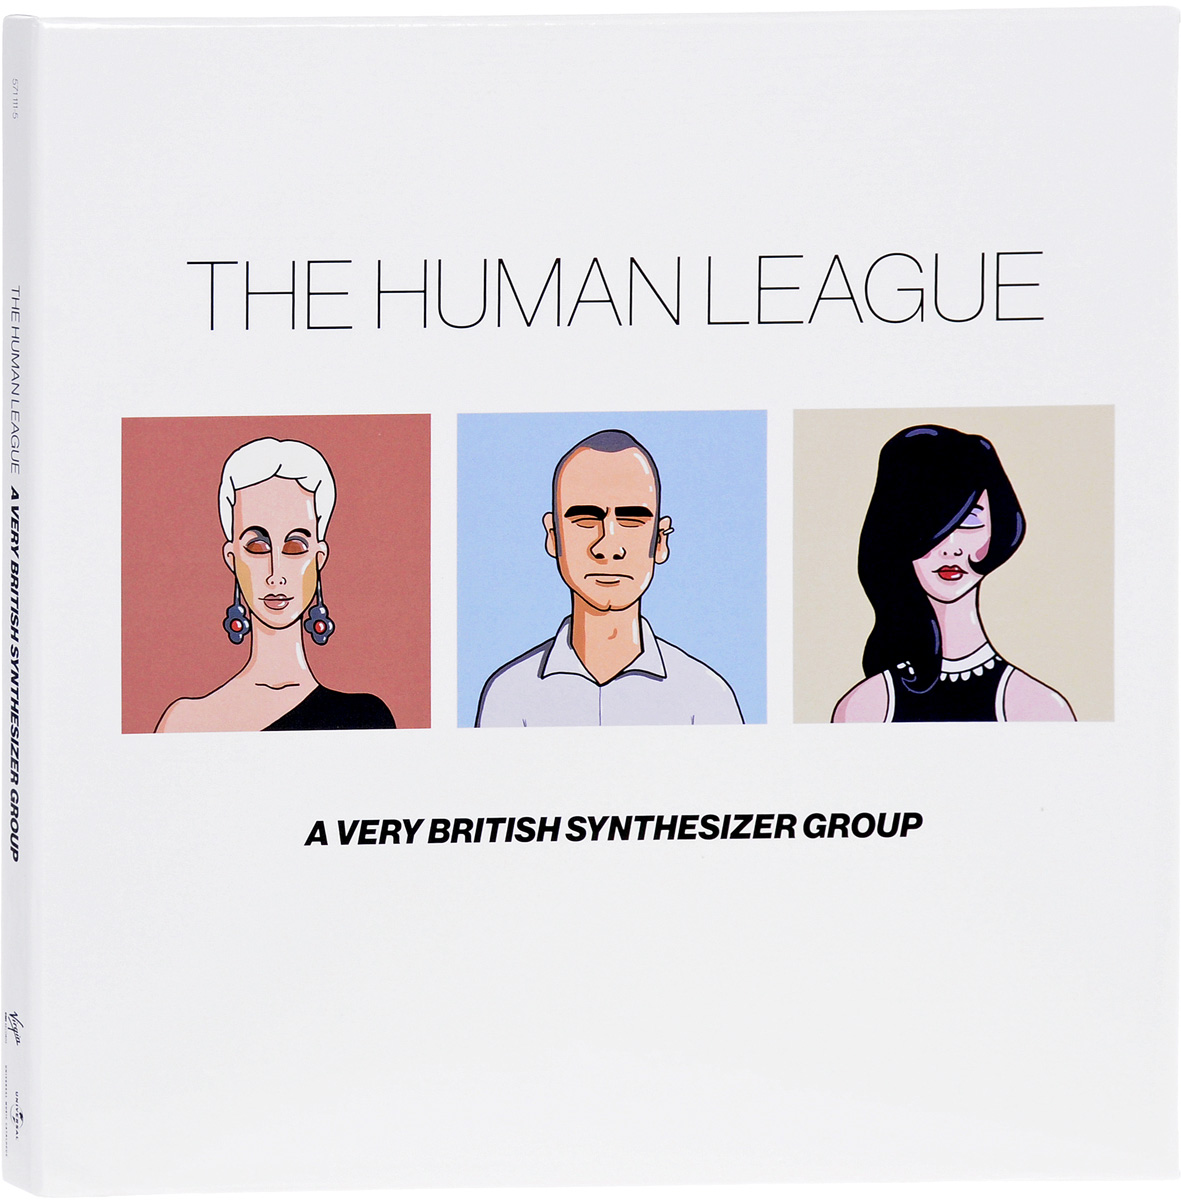 The Human League The Human League. A Very British Synthesizer Group. Half Speed Master Edition (3 LP) наушники полноразмерные sol republic master tracks gunmetal 1601 30